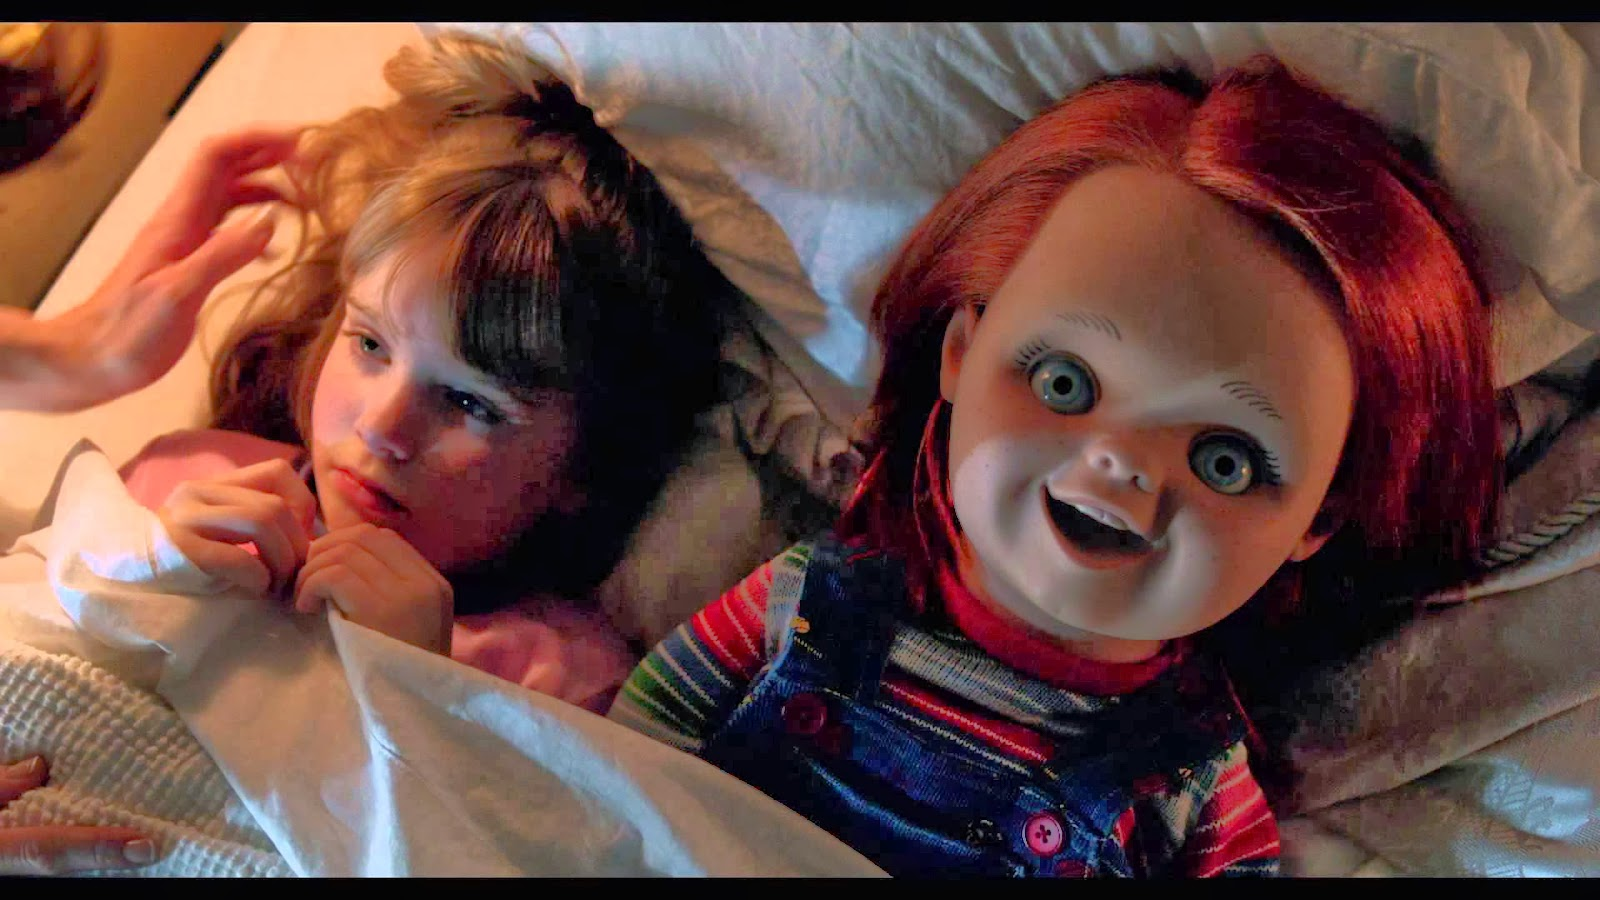 from Chris free chucky the doll porn